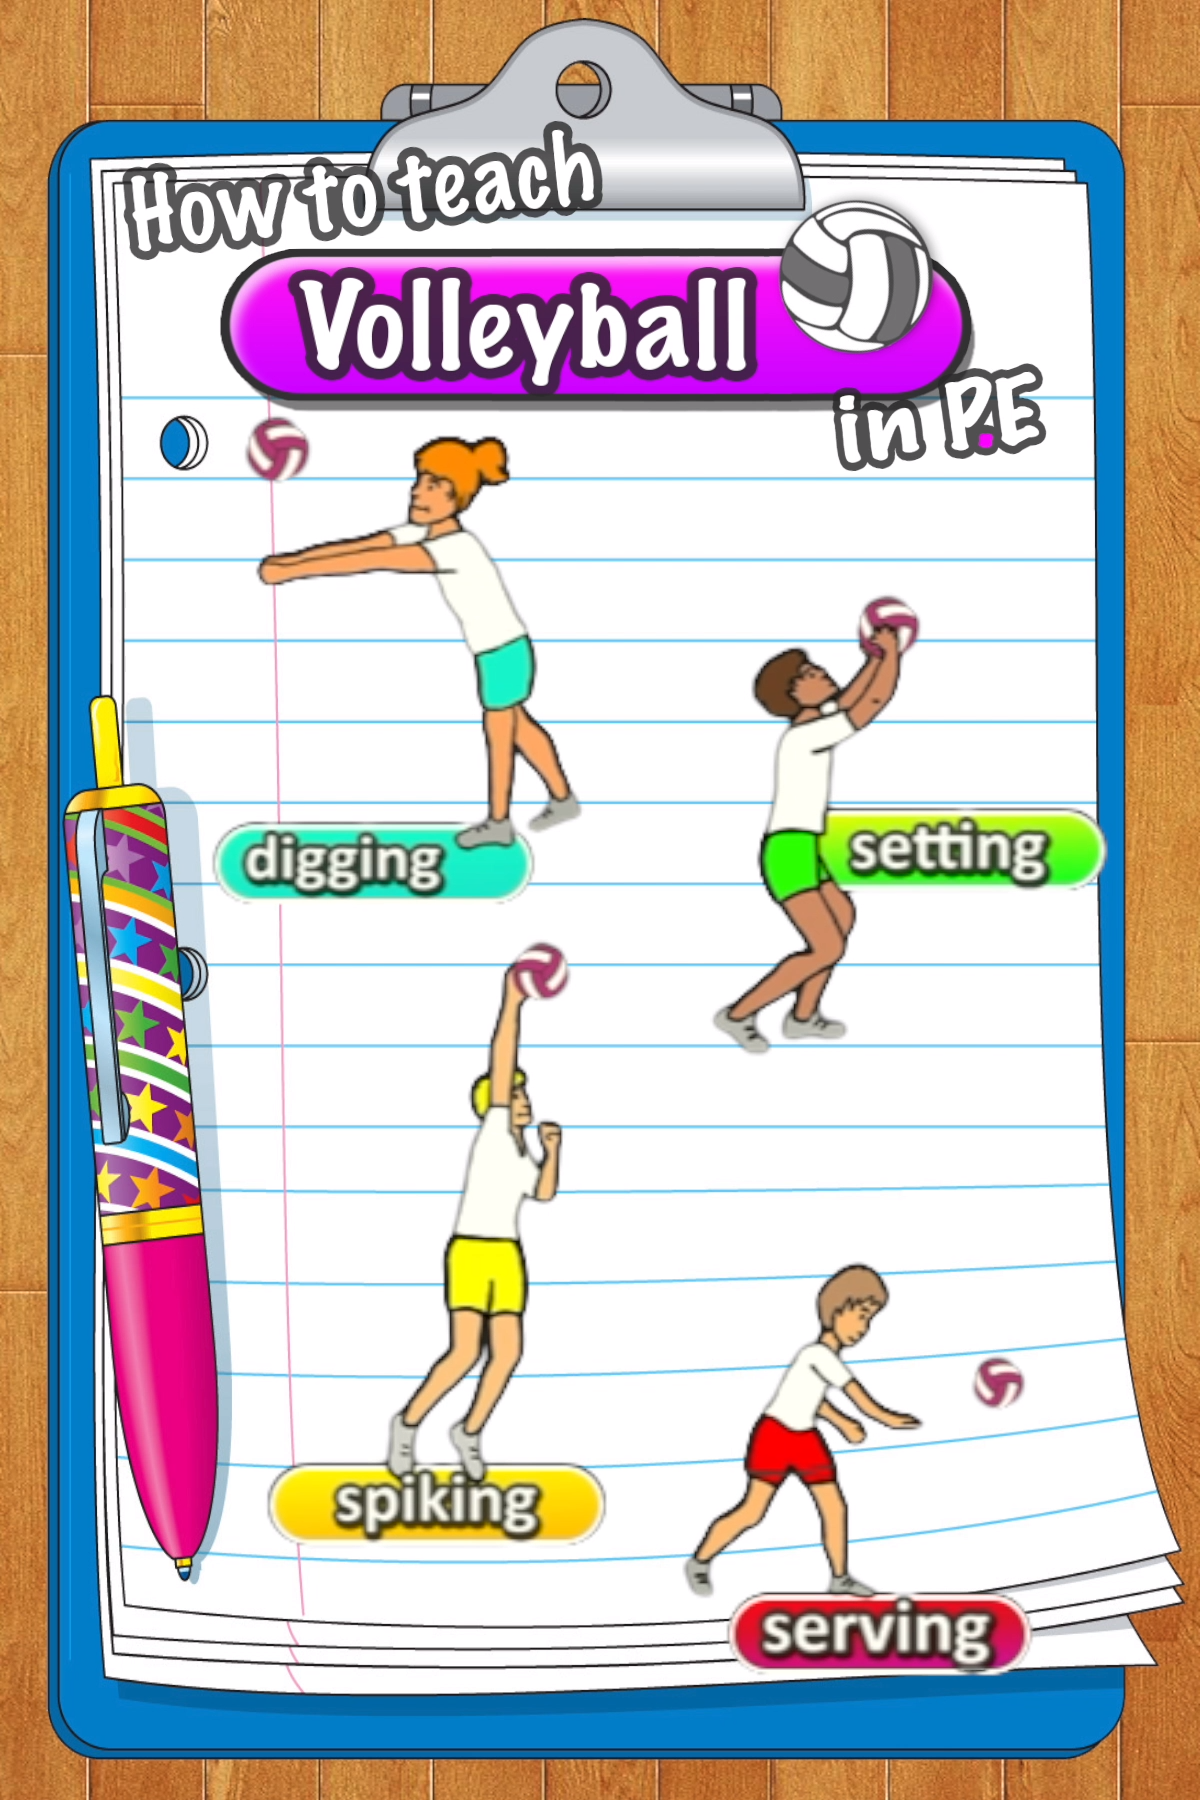 Volleyball Games And Activities Teach Volleyball In P E Video Physical Education Lessons Physical Education Physical Education Games